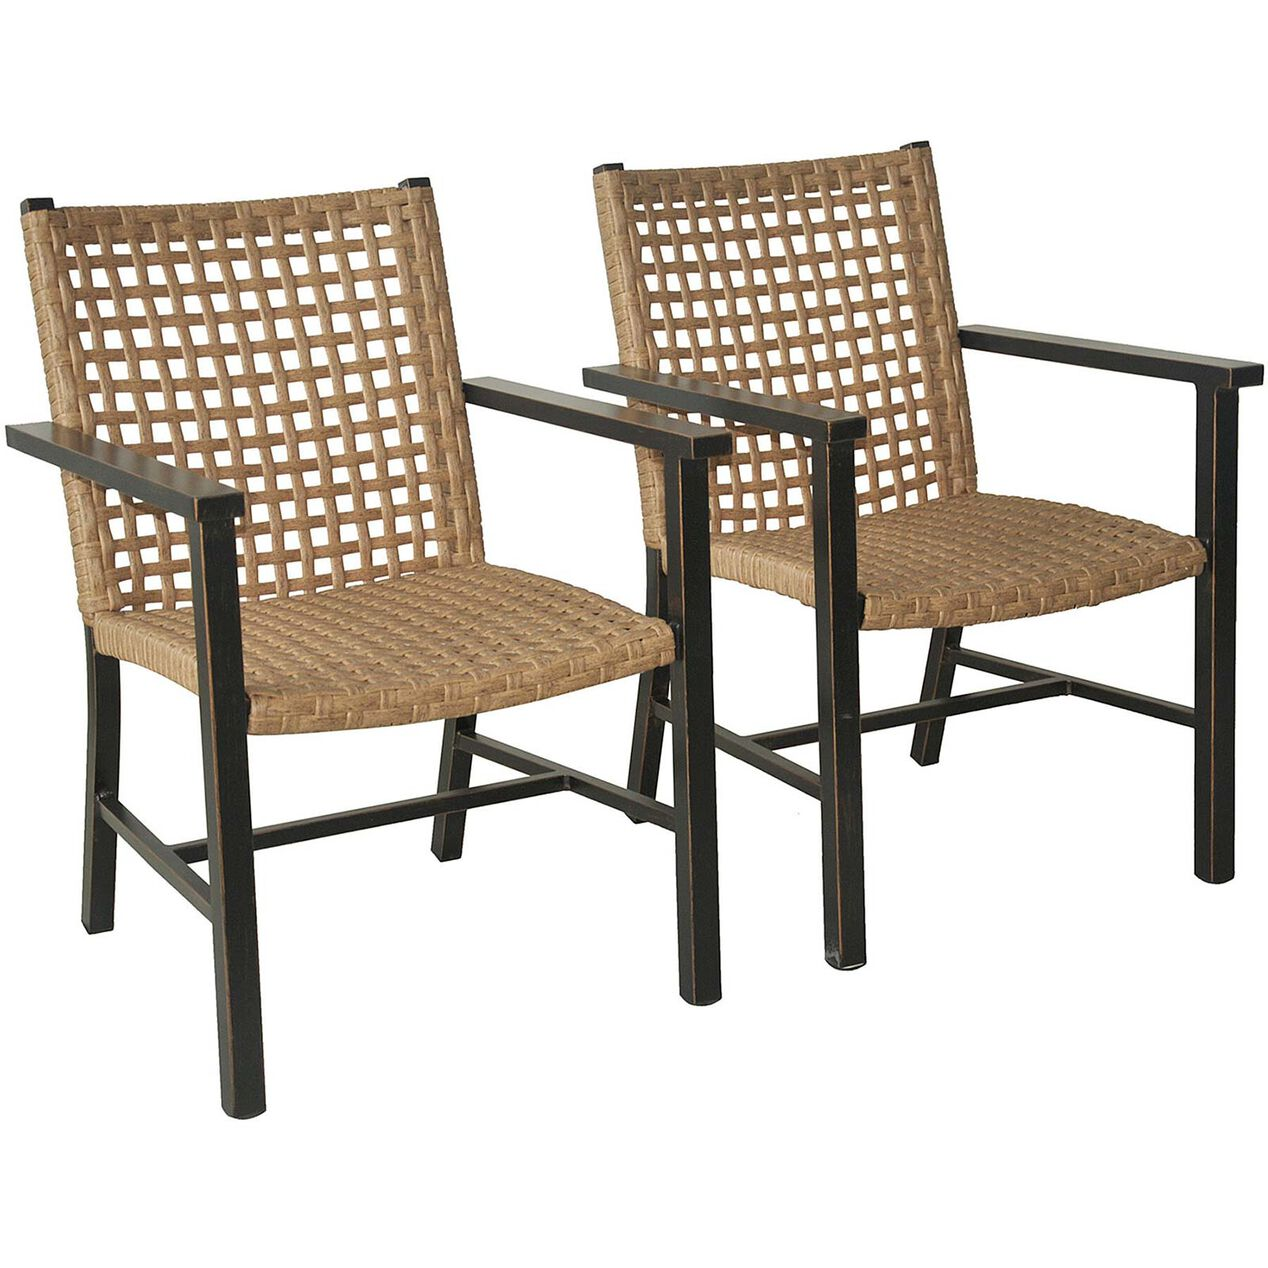 Cardiff Armchair Set Of 2 At Home 4 2 1